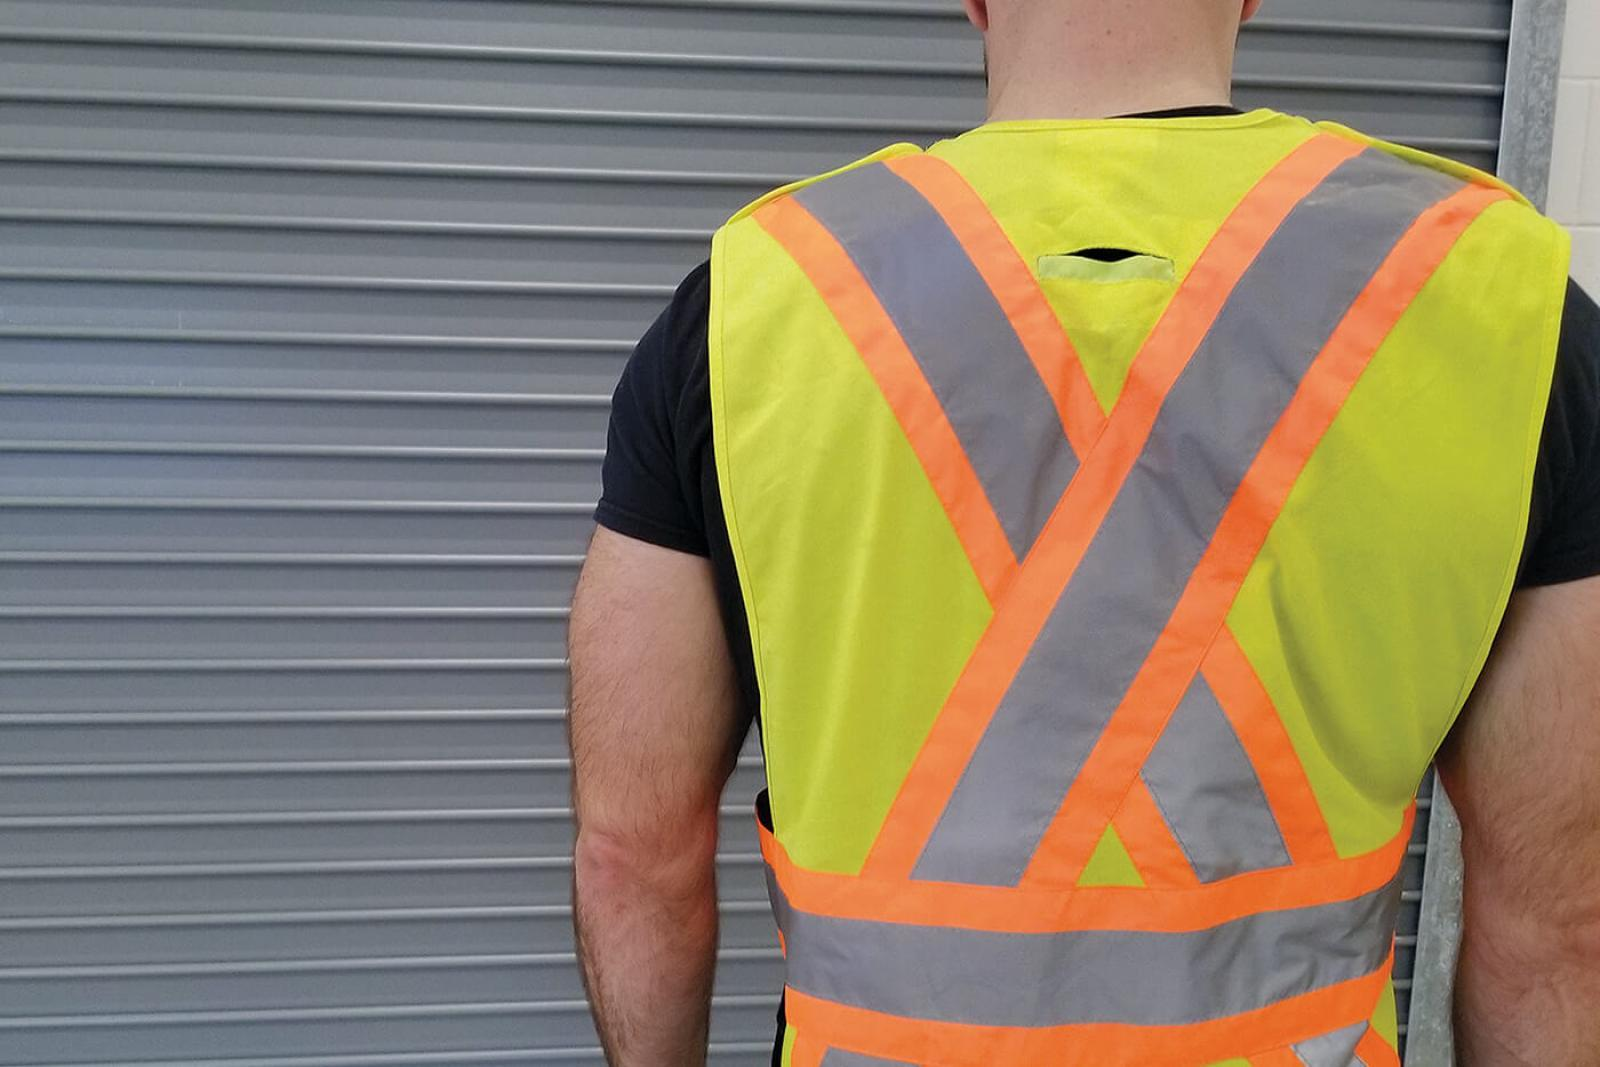 High visibility clothing is just one of the many things inspectors will look for.